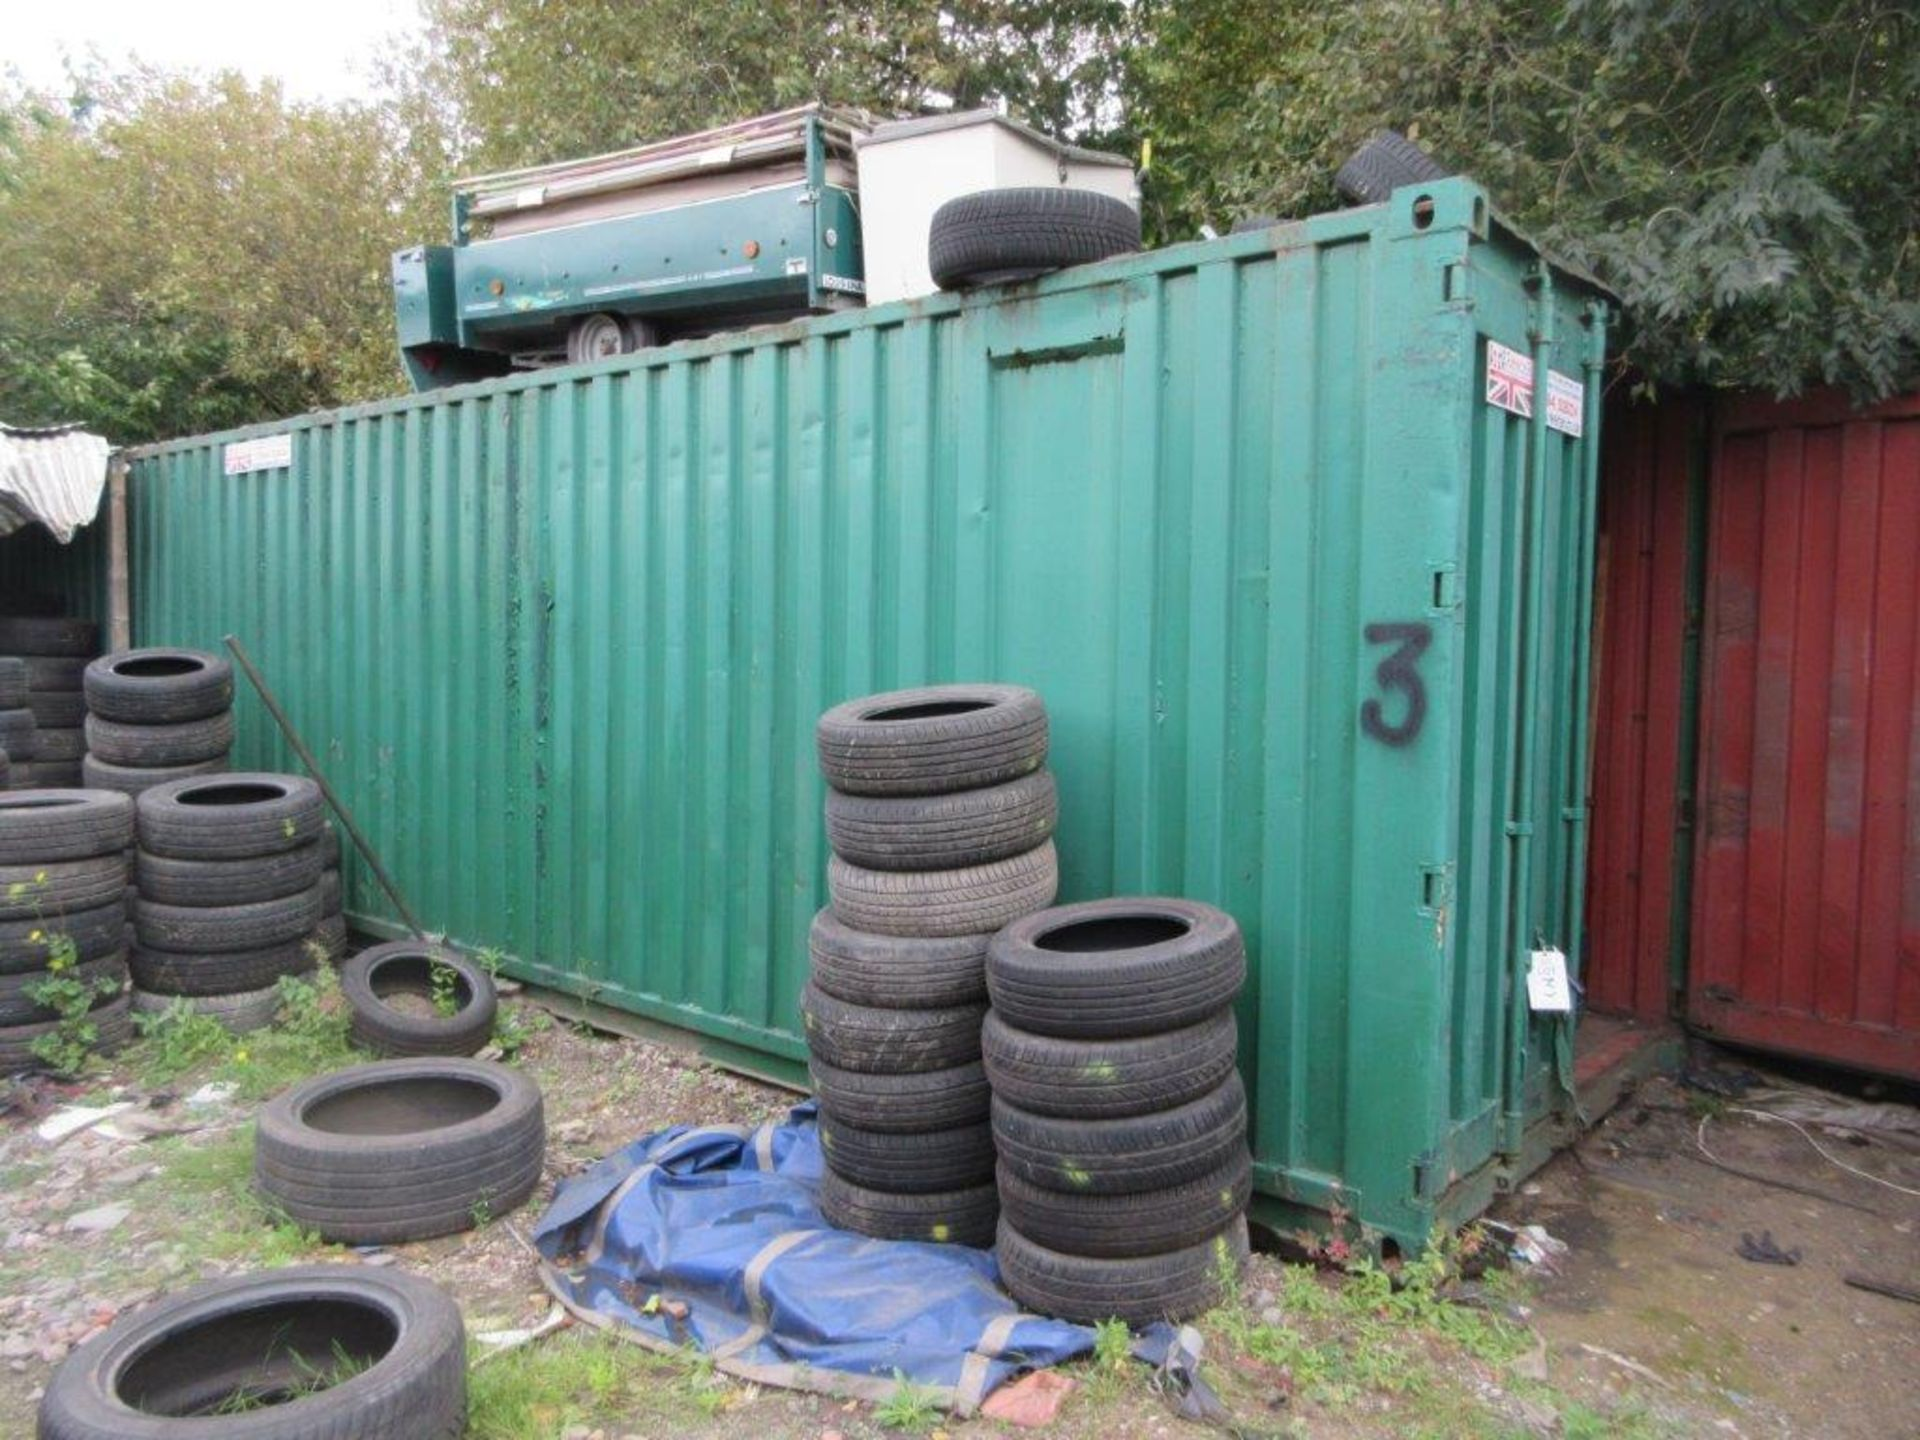 Lot 3 - Green steel shipping container, 40 ft. x 8 ft. approx. (Tyres included with Lot 1). *NB: A work